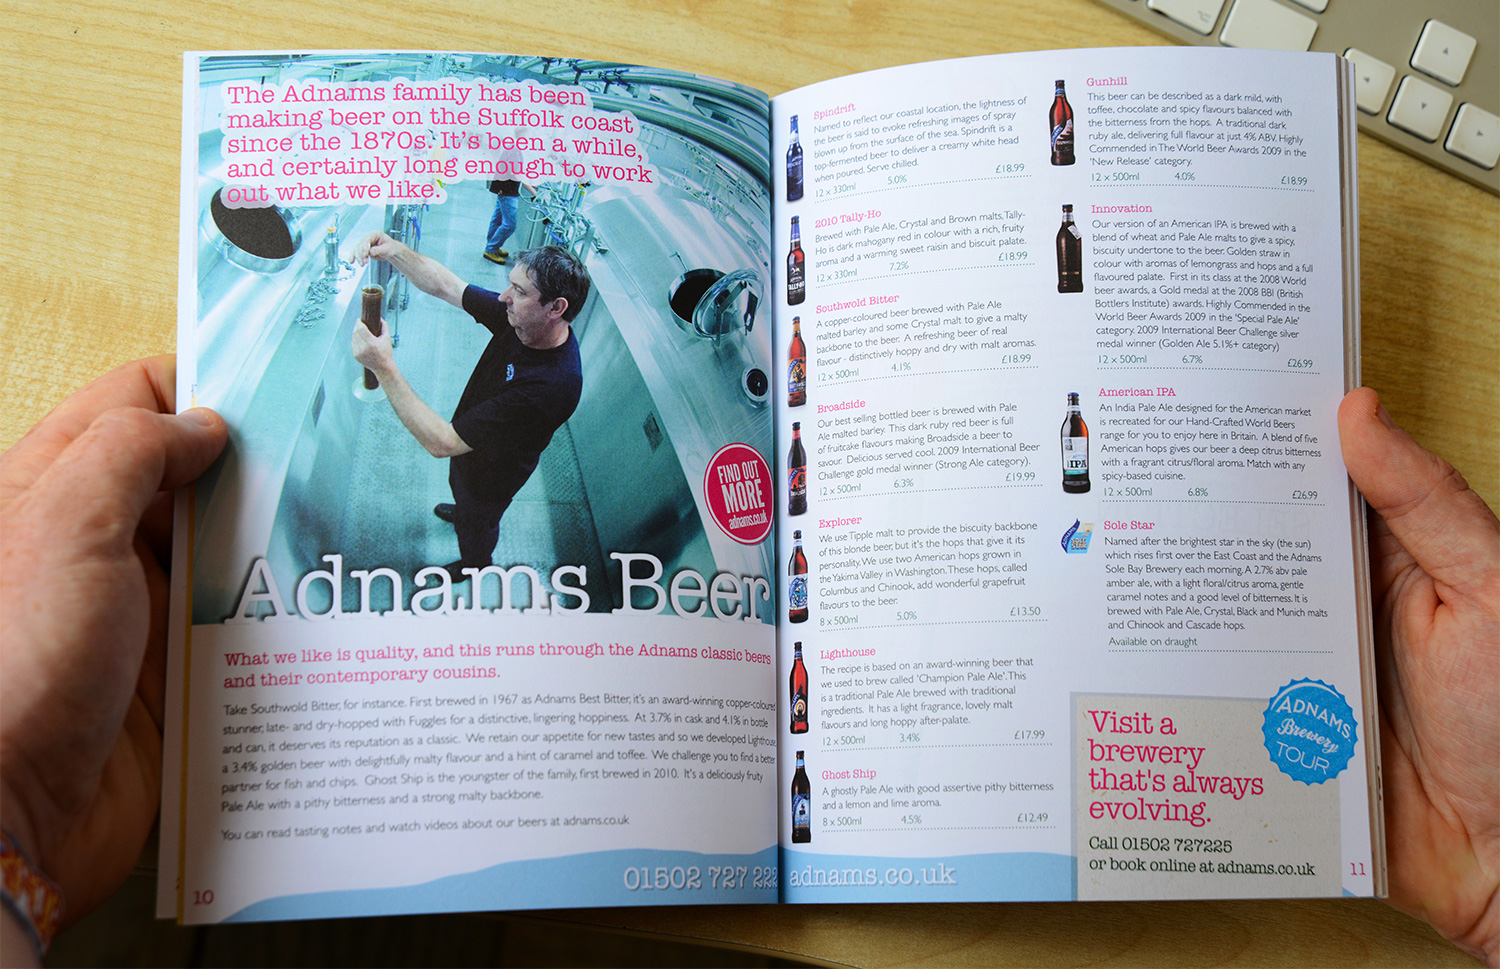 Adnams winebook inside